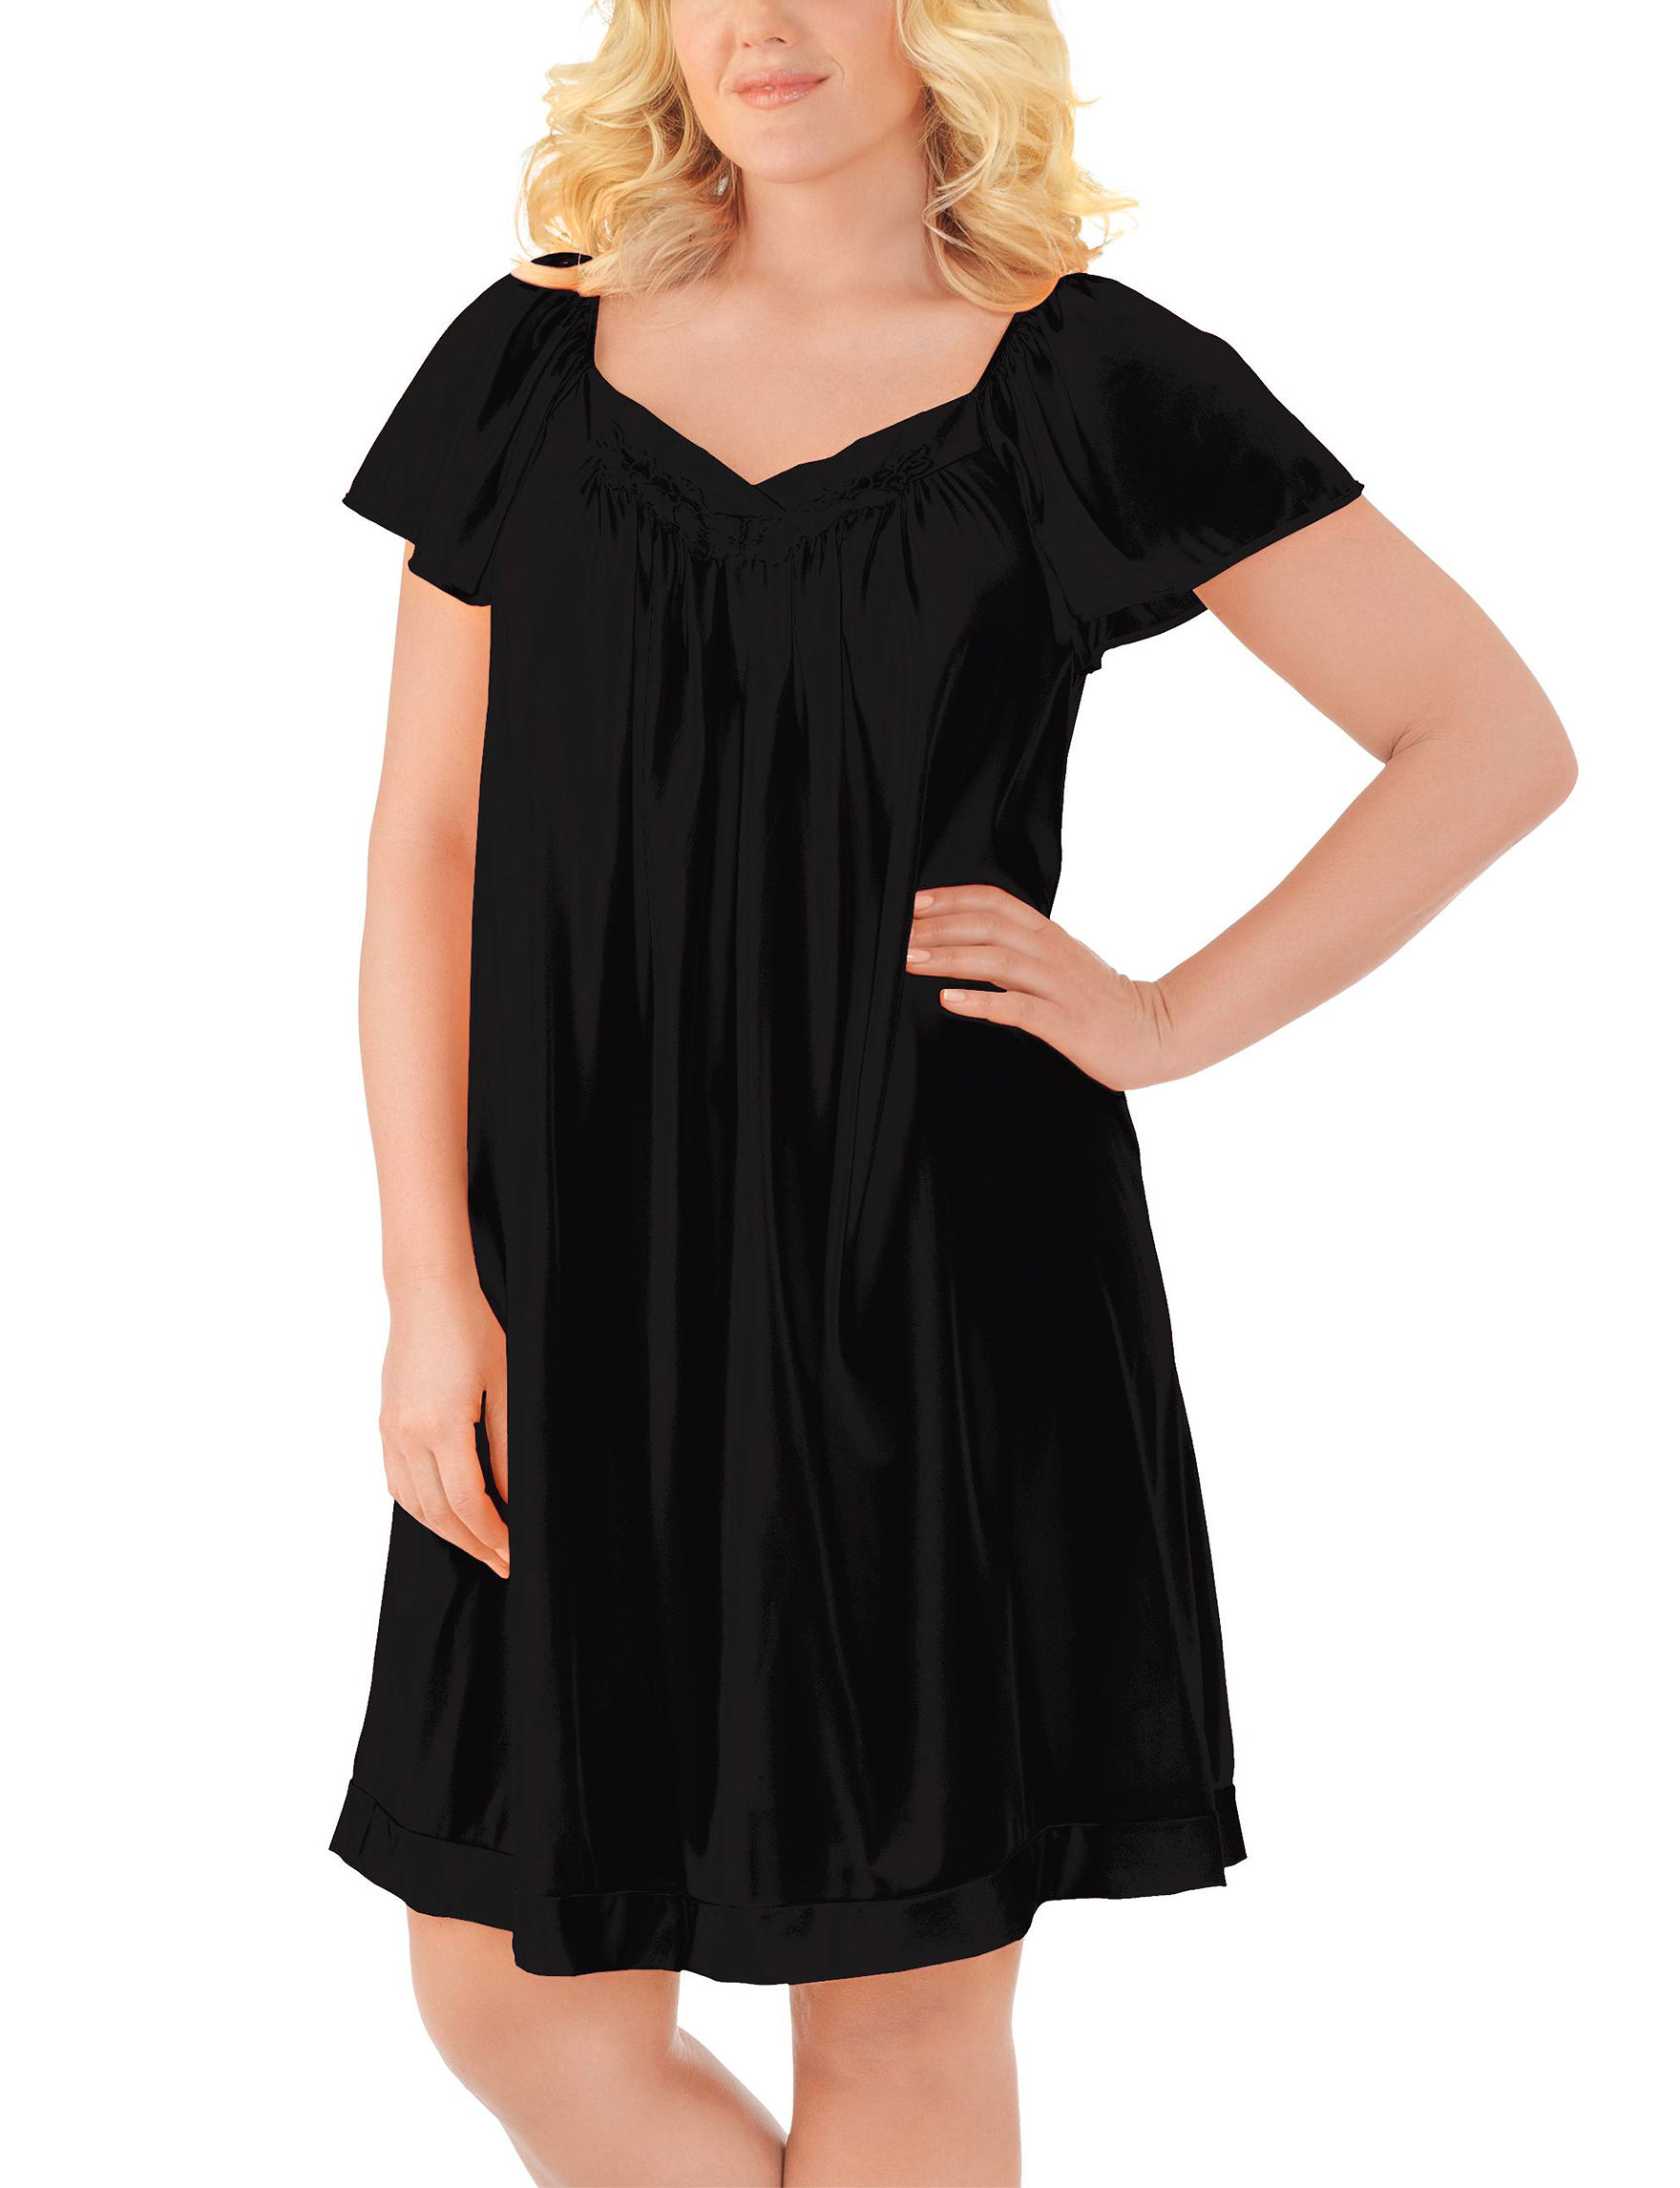 Exquisite Form Black Nightgowns & Sleep Shirts